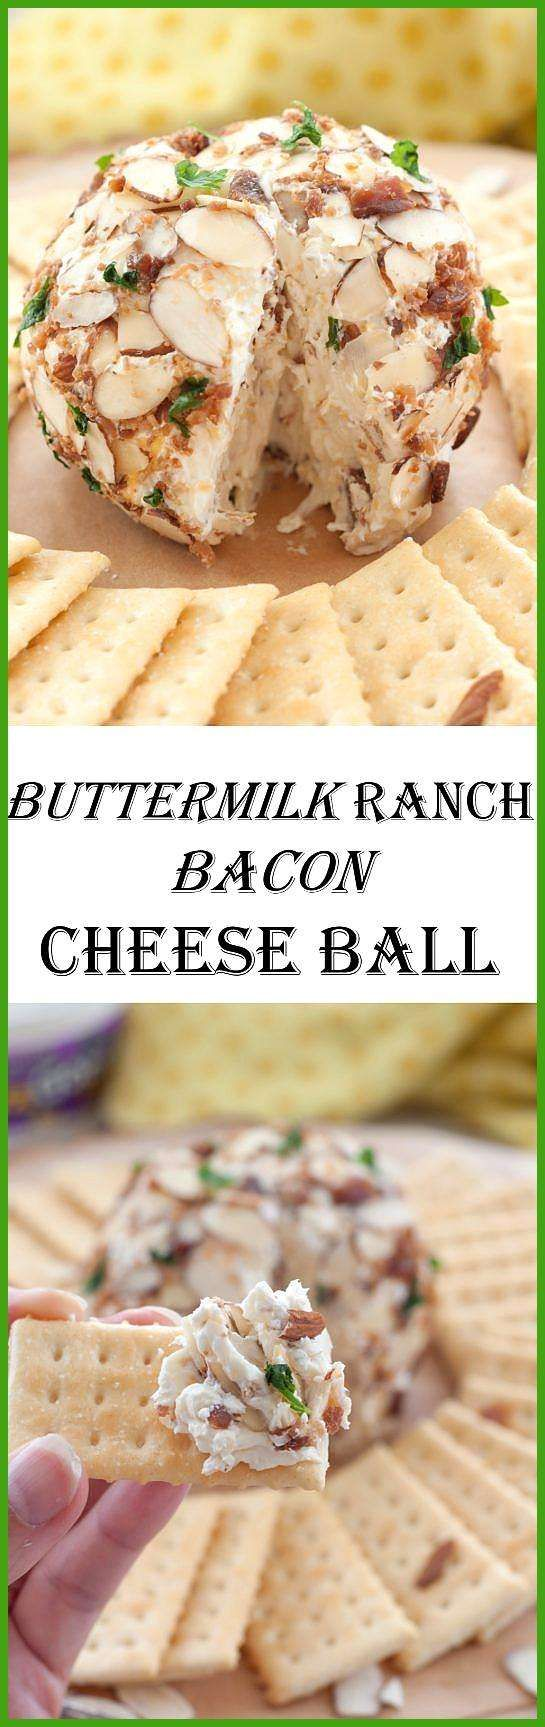 Buttermilk Ranch Bacon Cheese Ball appetierz non dairy holiday appetierz